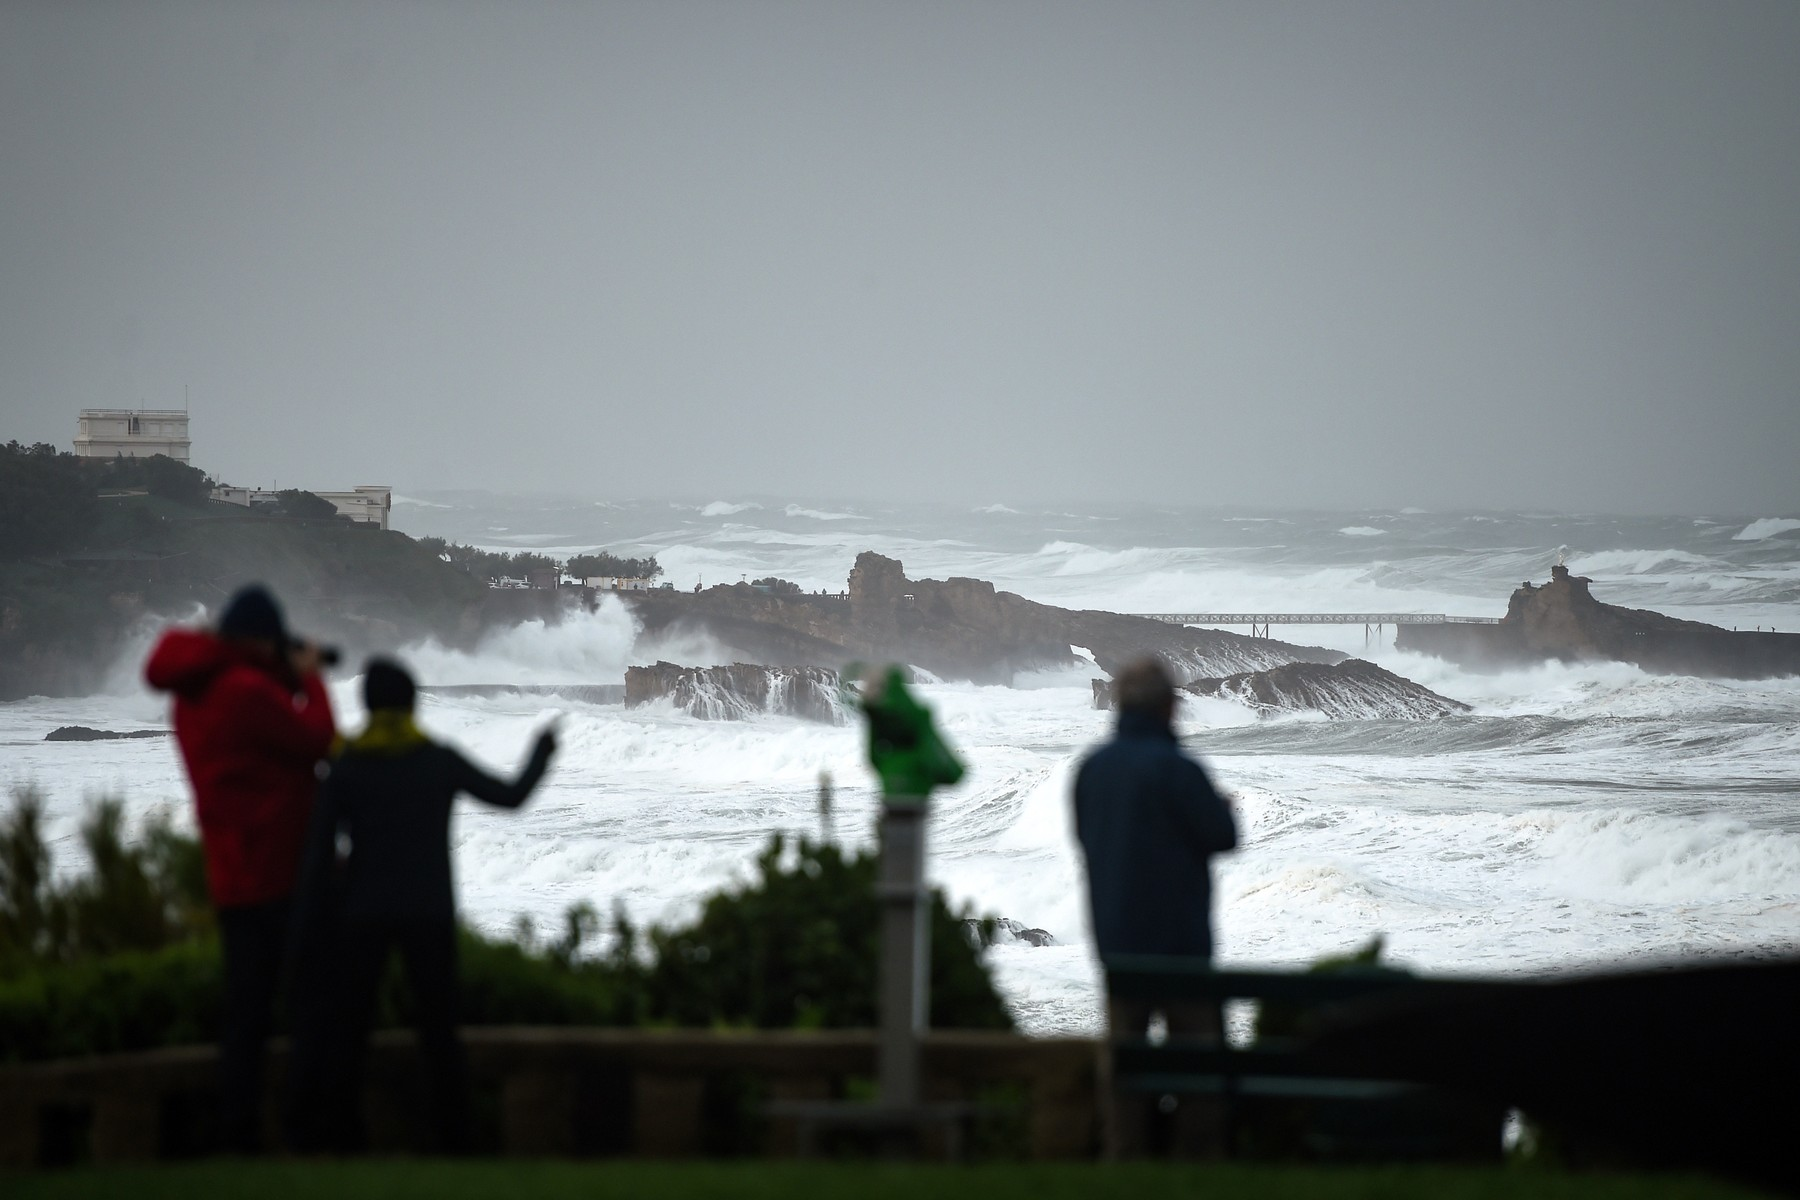 People look at the ocean's waves hitting the coast in Biarritz, south western France, on November 3, 2019 during the Amelie storm.  Some 100,000 households were deprived of electricity on the morning of November 3, 2019 in south western France, where the Atlantic coast was swept by storm Amelie, causing damage but no casualties, according to an initial assessment by the emergency services and the prefectures., Image: 480830838, License: Rights-managed, Restrictions: , Model Release: no, Credit line: GAIZKA IROZ / AFP / Profimedia